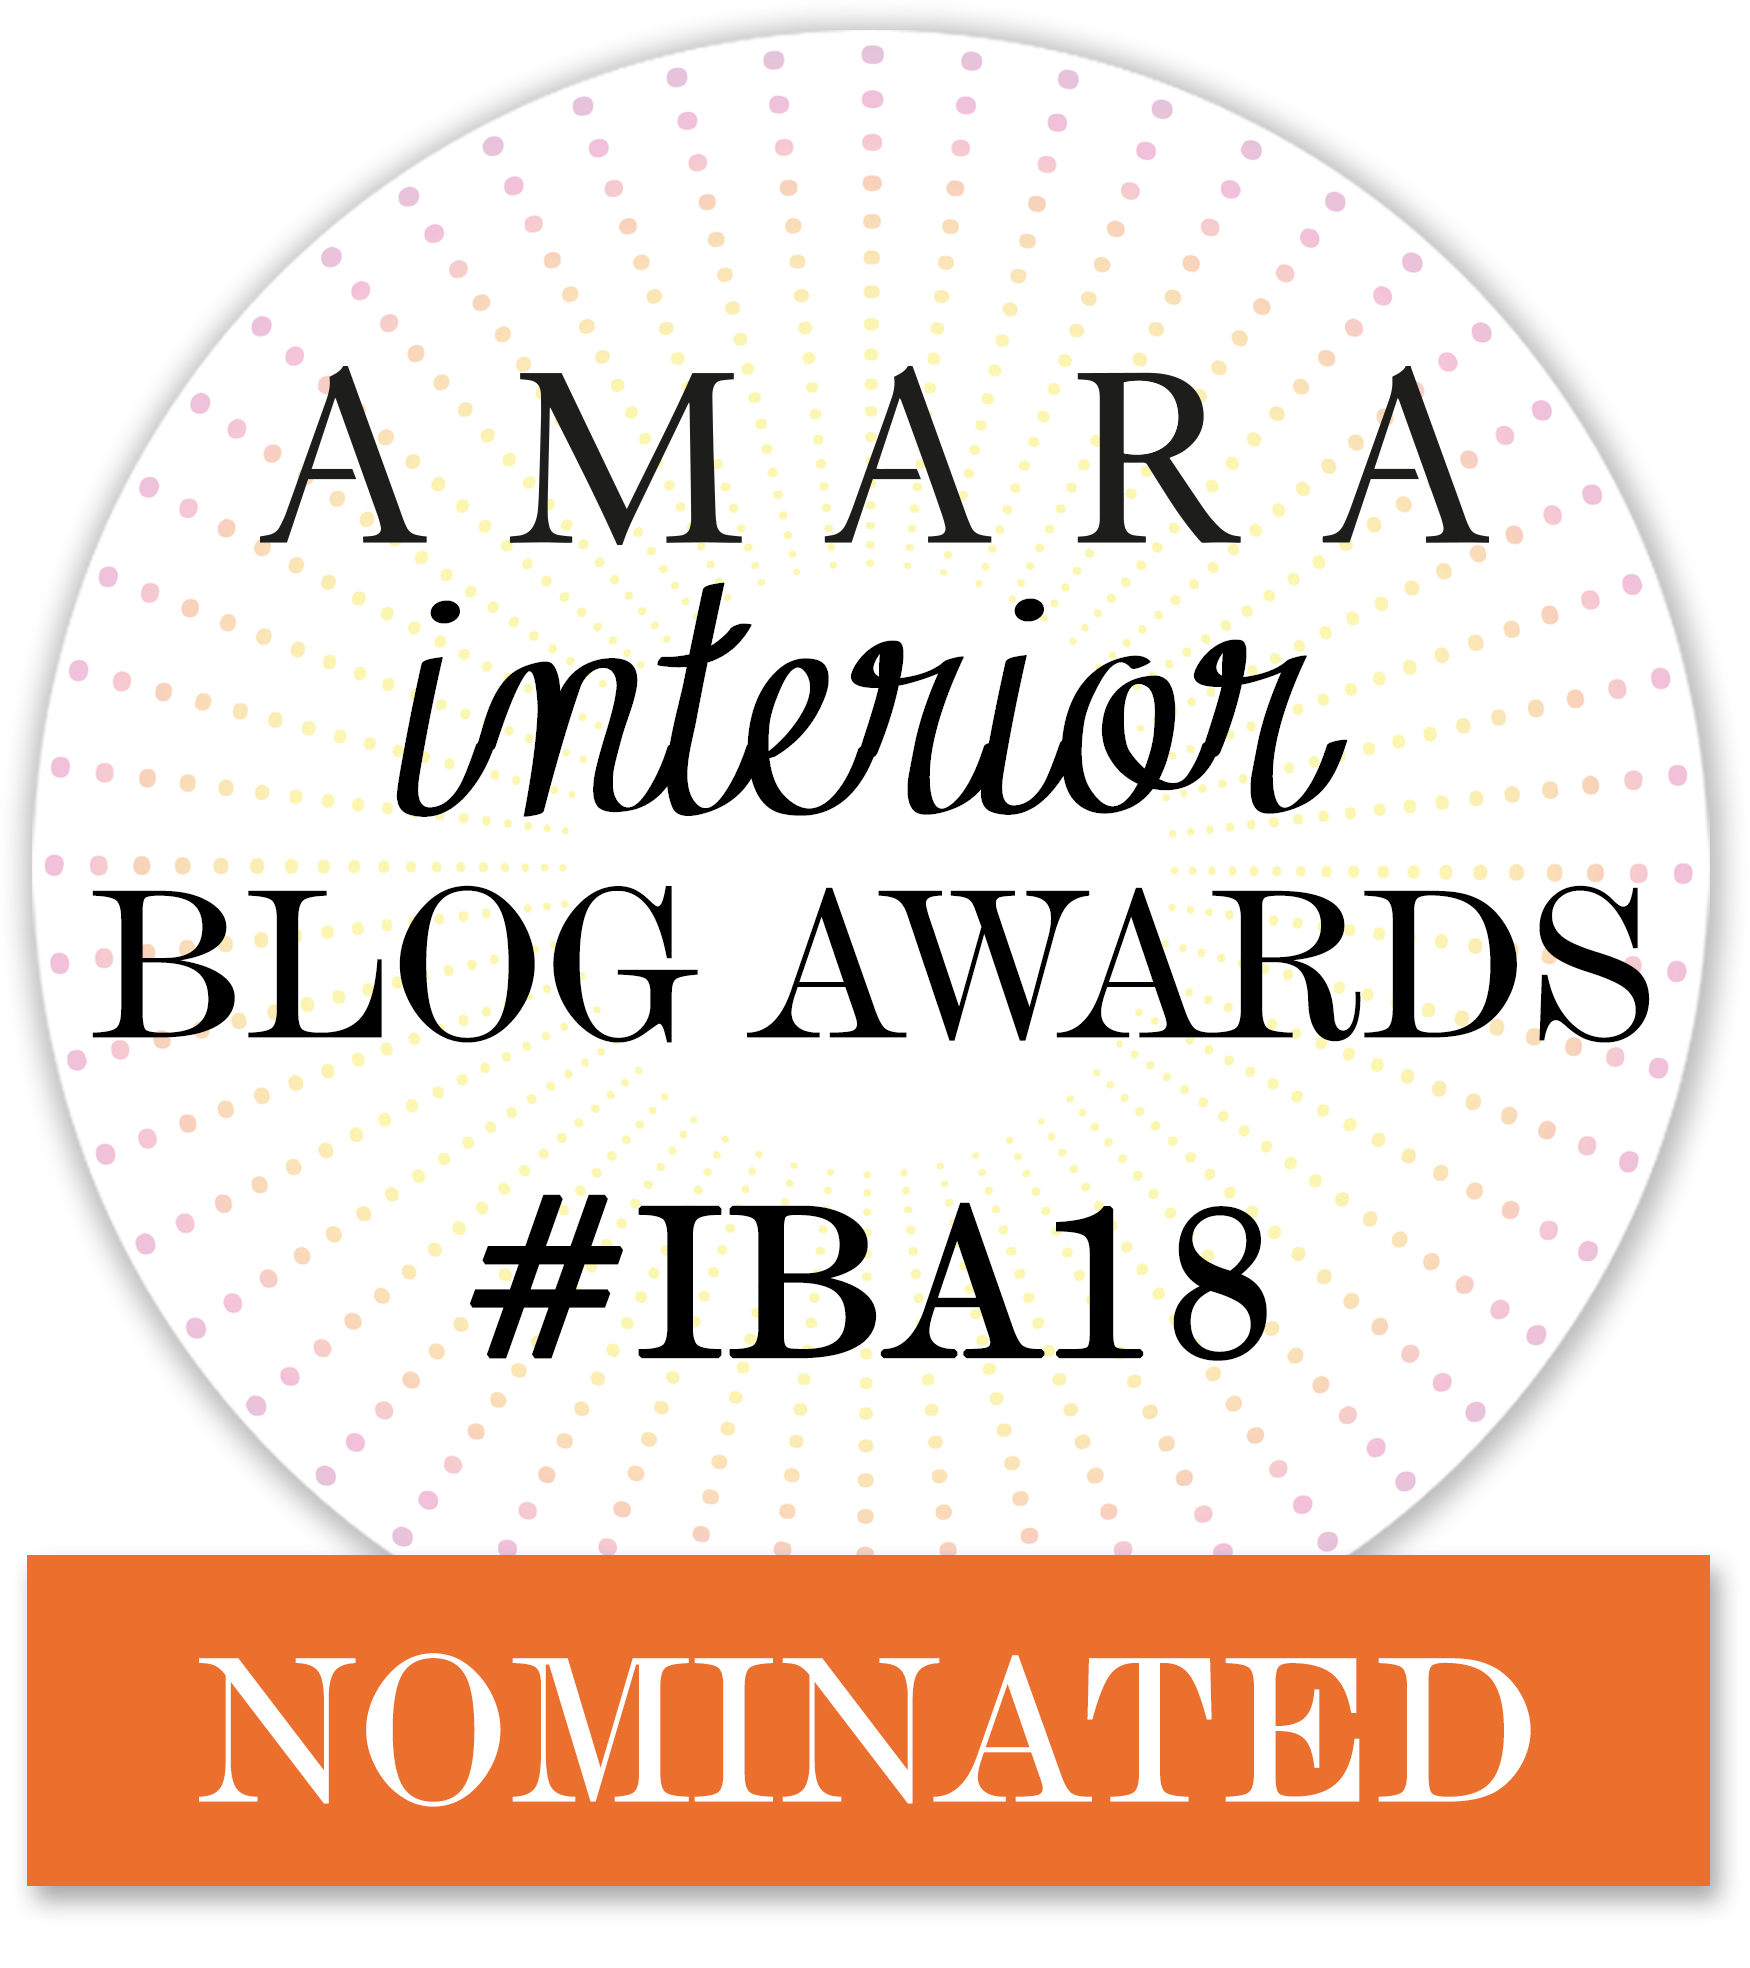 Vote for First Sense Interiors at the Amara Blog Awards 2018